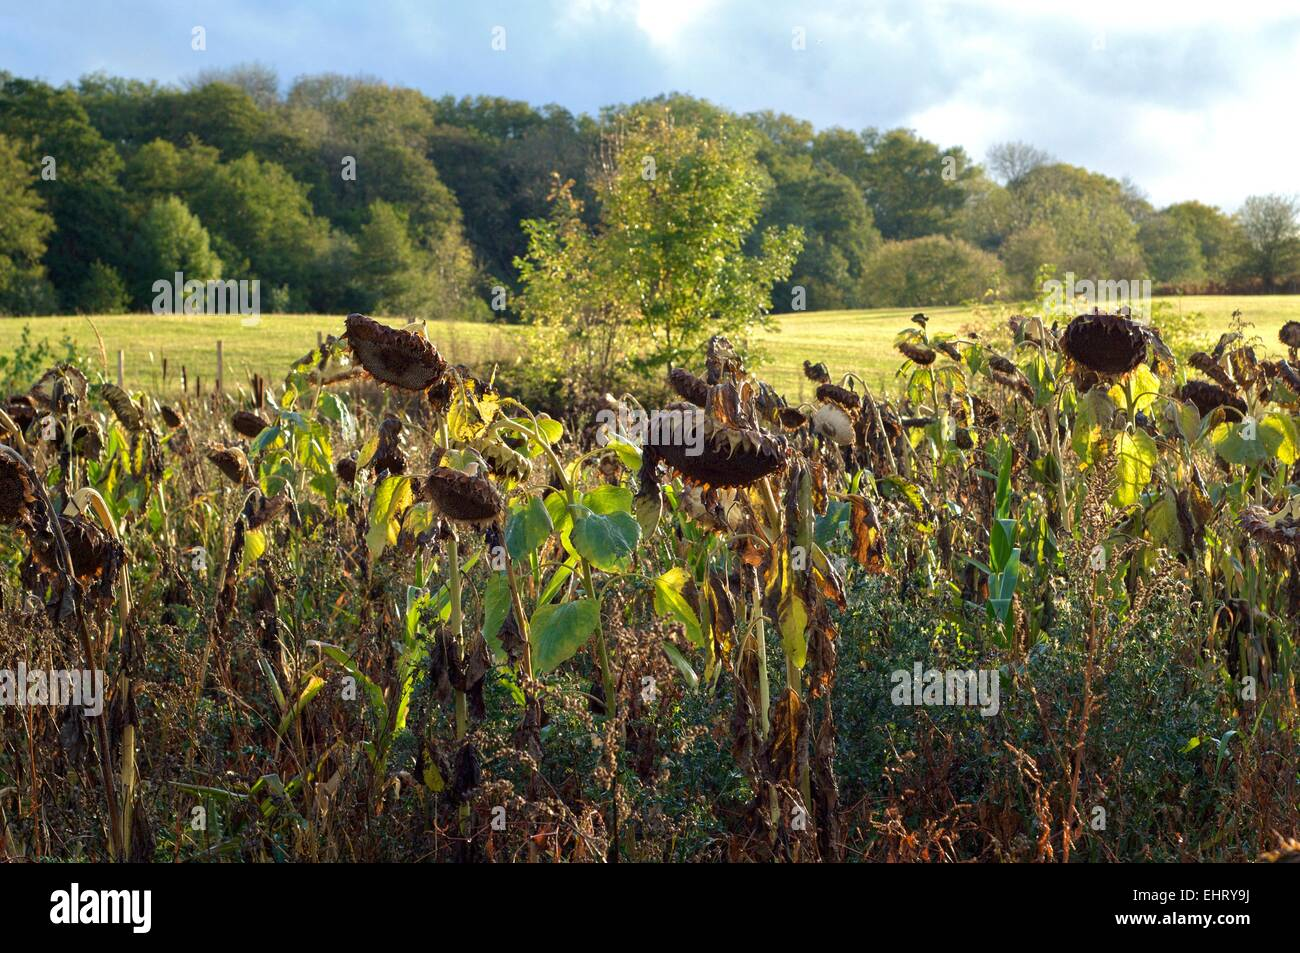 Dead Sunflowers In A Field The United Kingdom Autumn